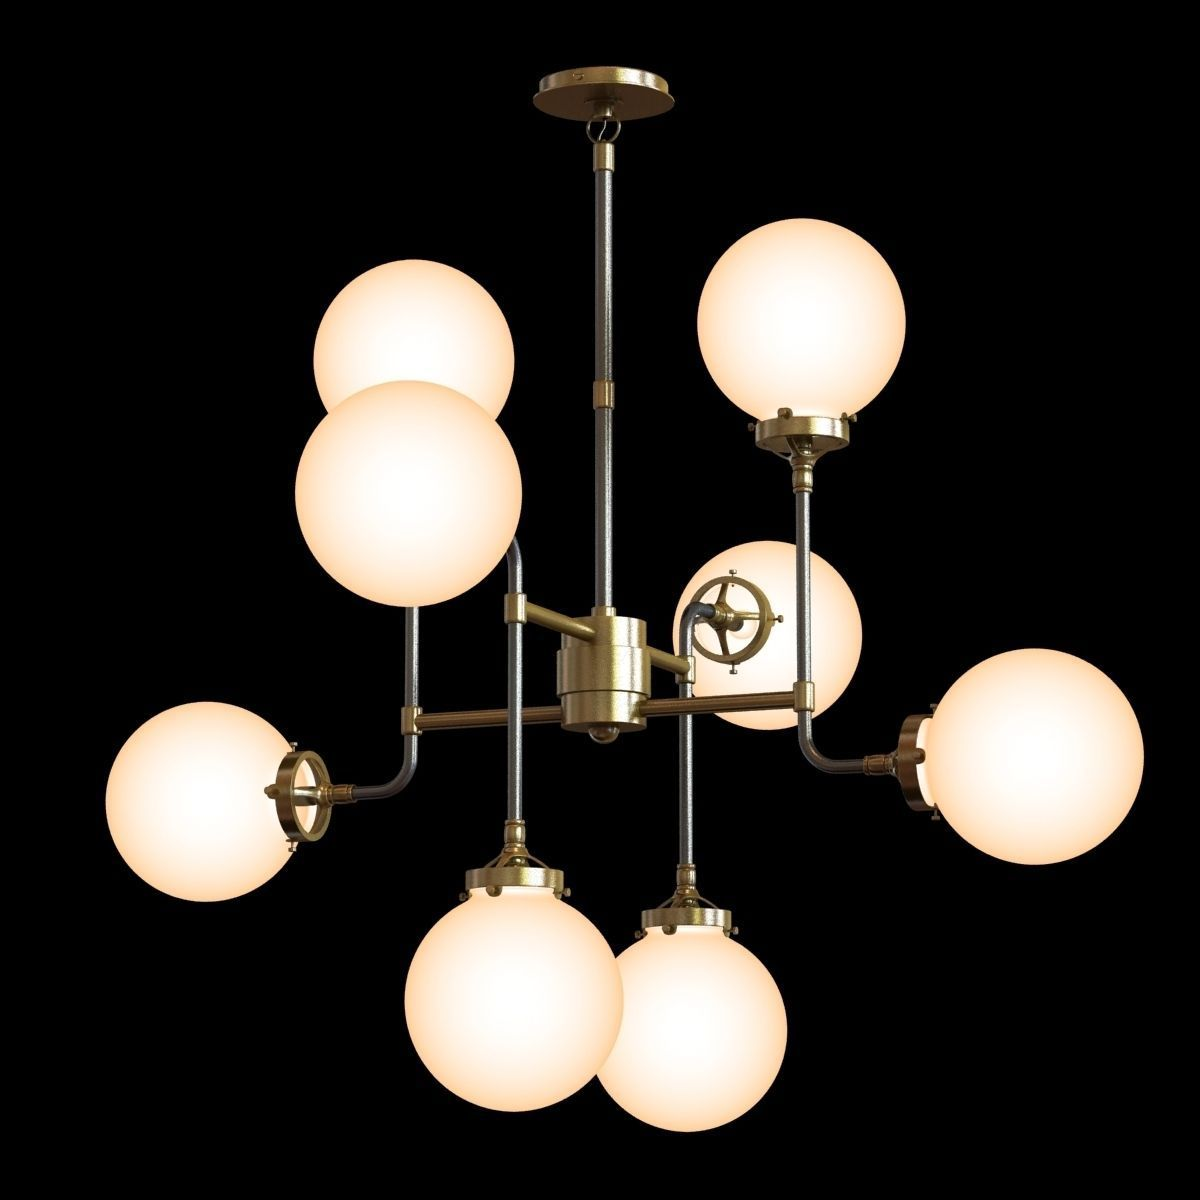 Restoration Hardware Bistro Globe Milk Gl 8 Light Chandelier Model